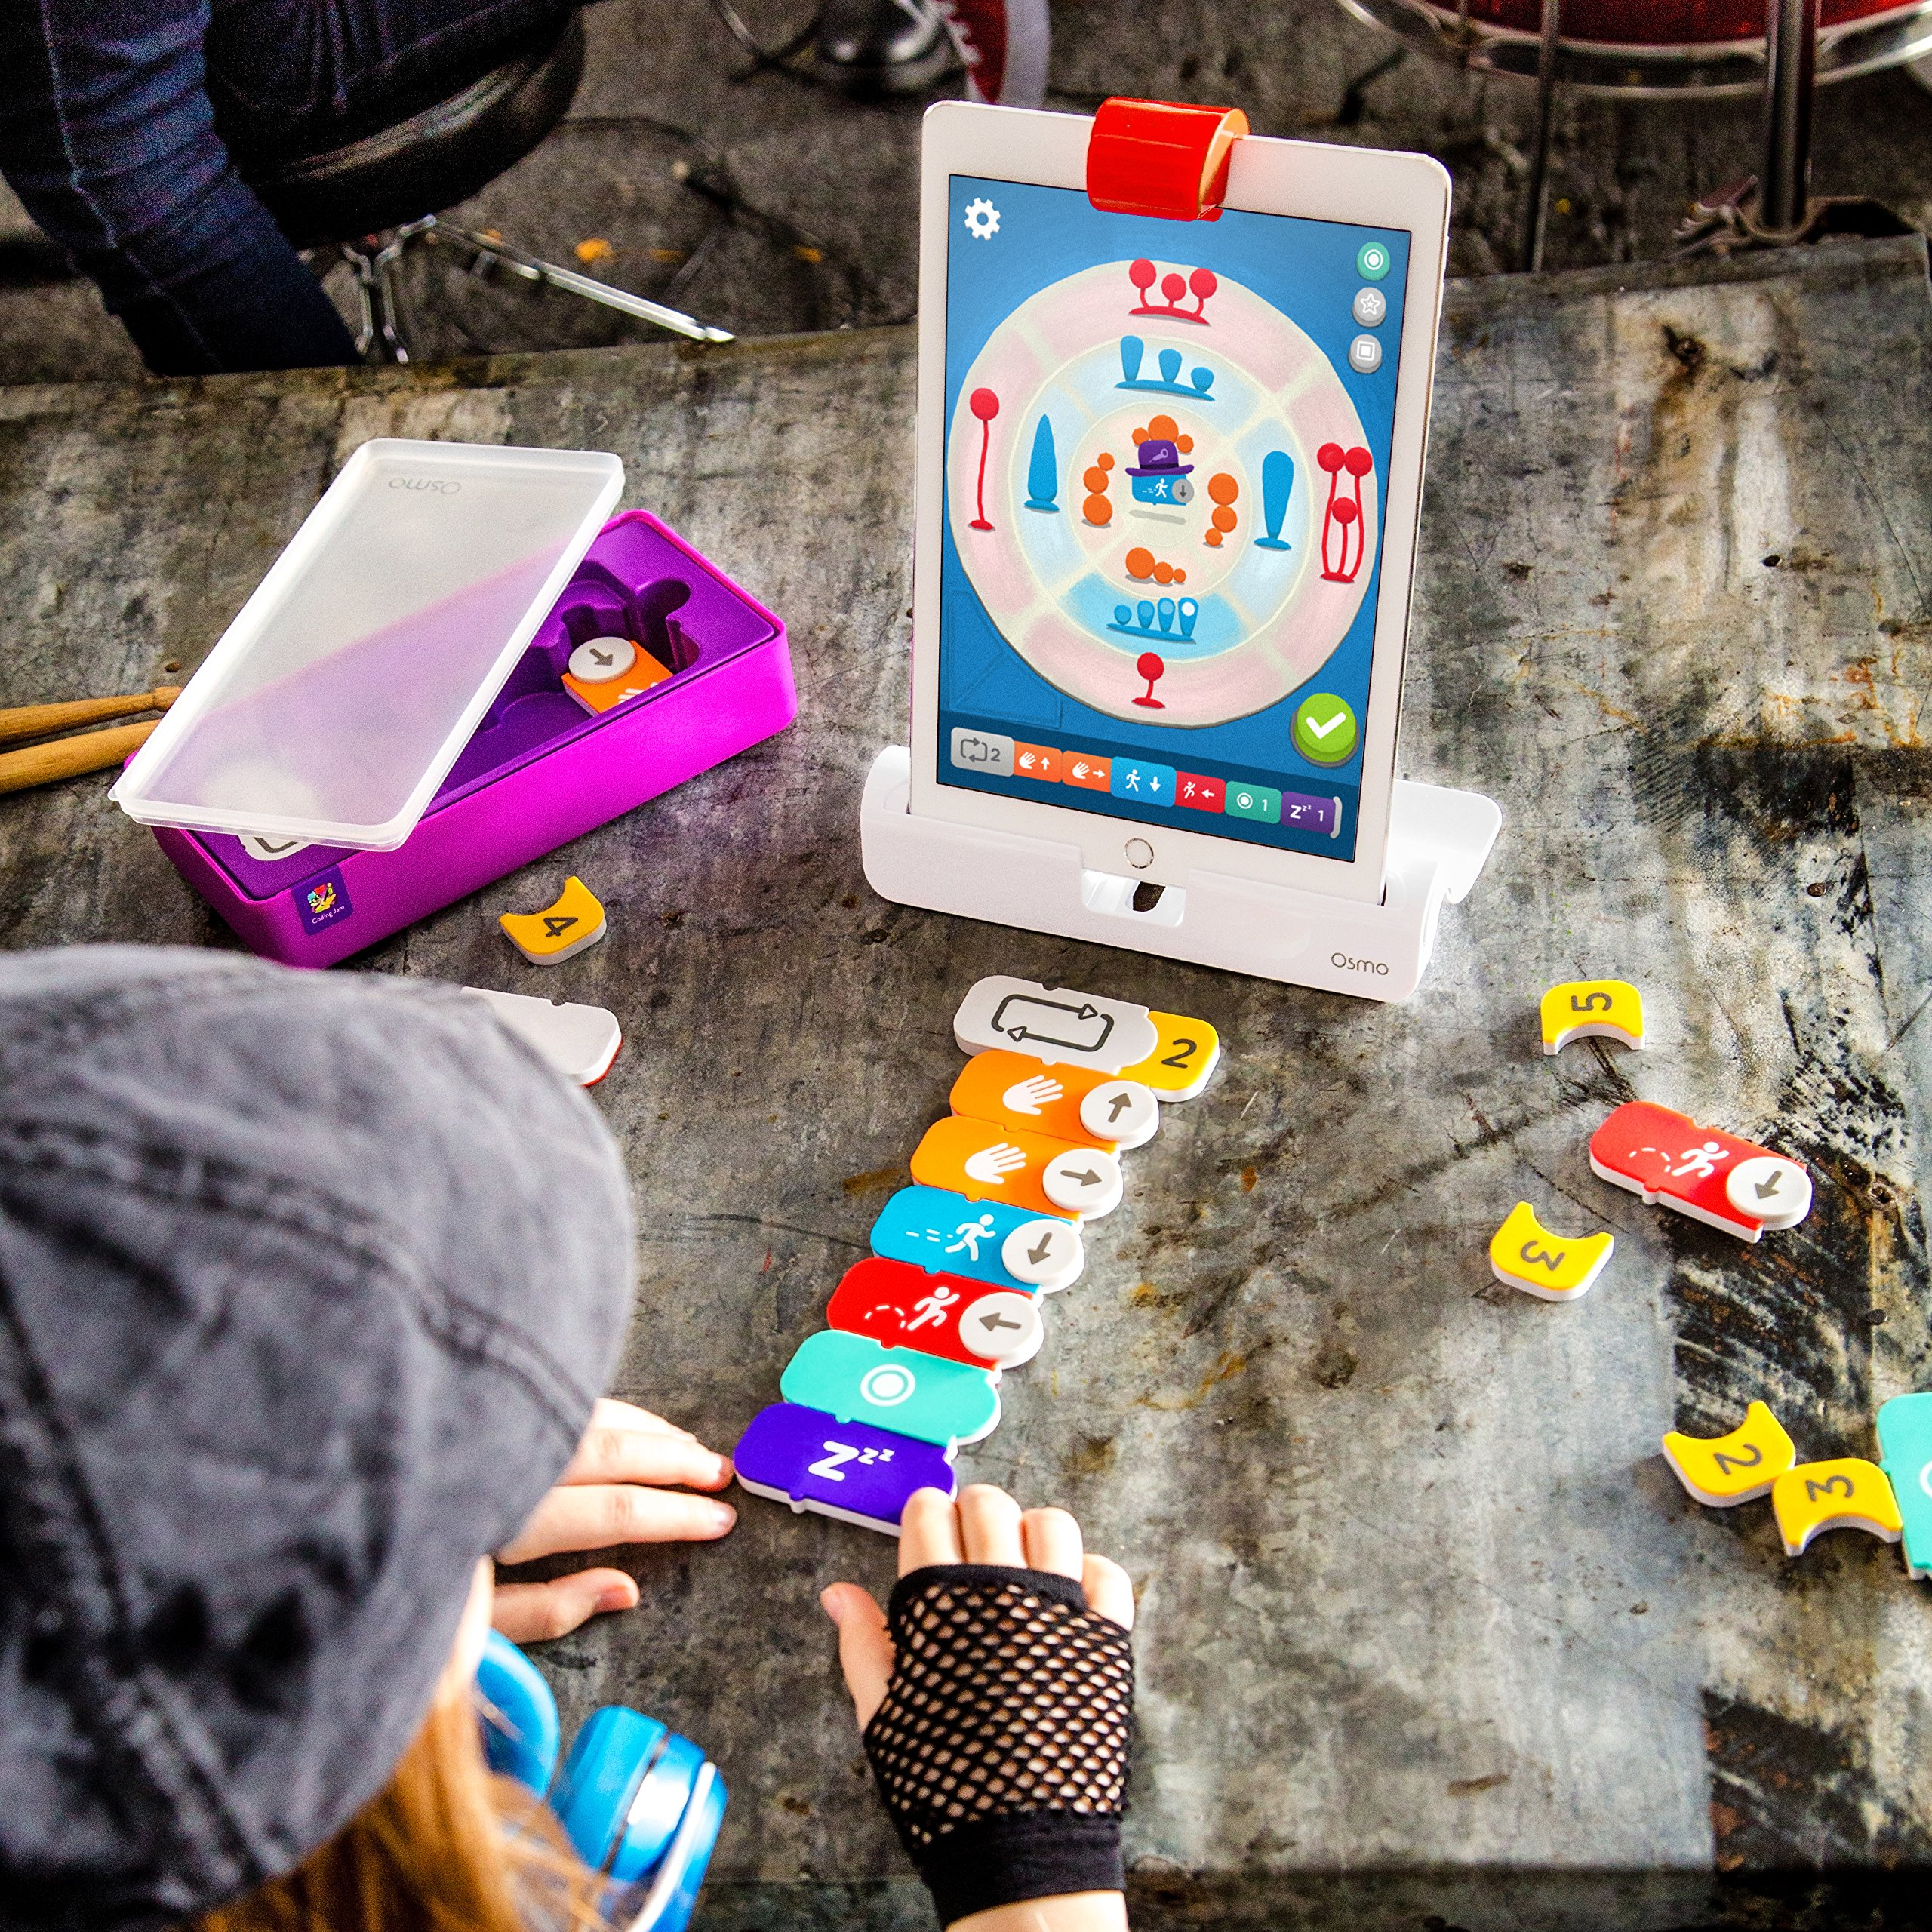 Osmo - Coding Jam - Ages 6-12 - Music Creation, Coding & Problem Solving - For iPad and Fire Tablet (Osmo Base Required) by Osmo (Image #4)